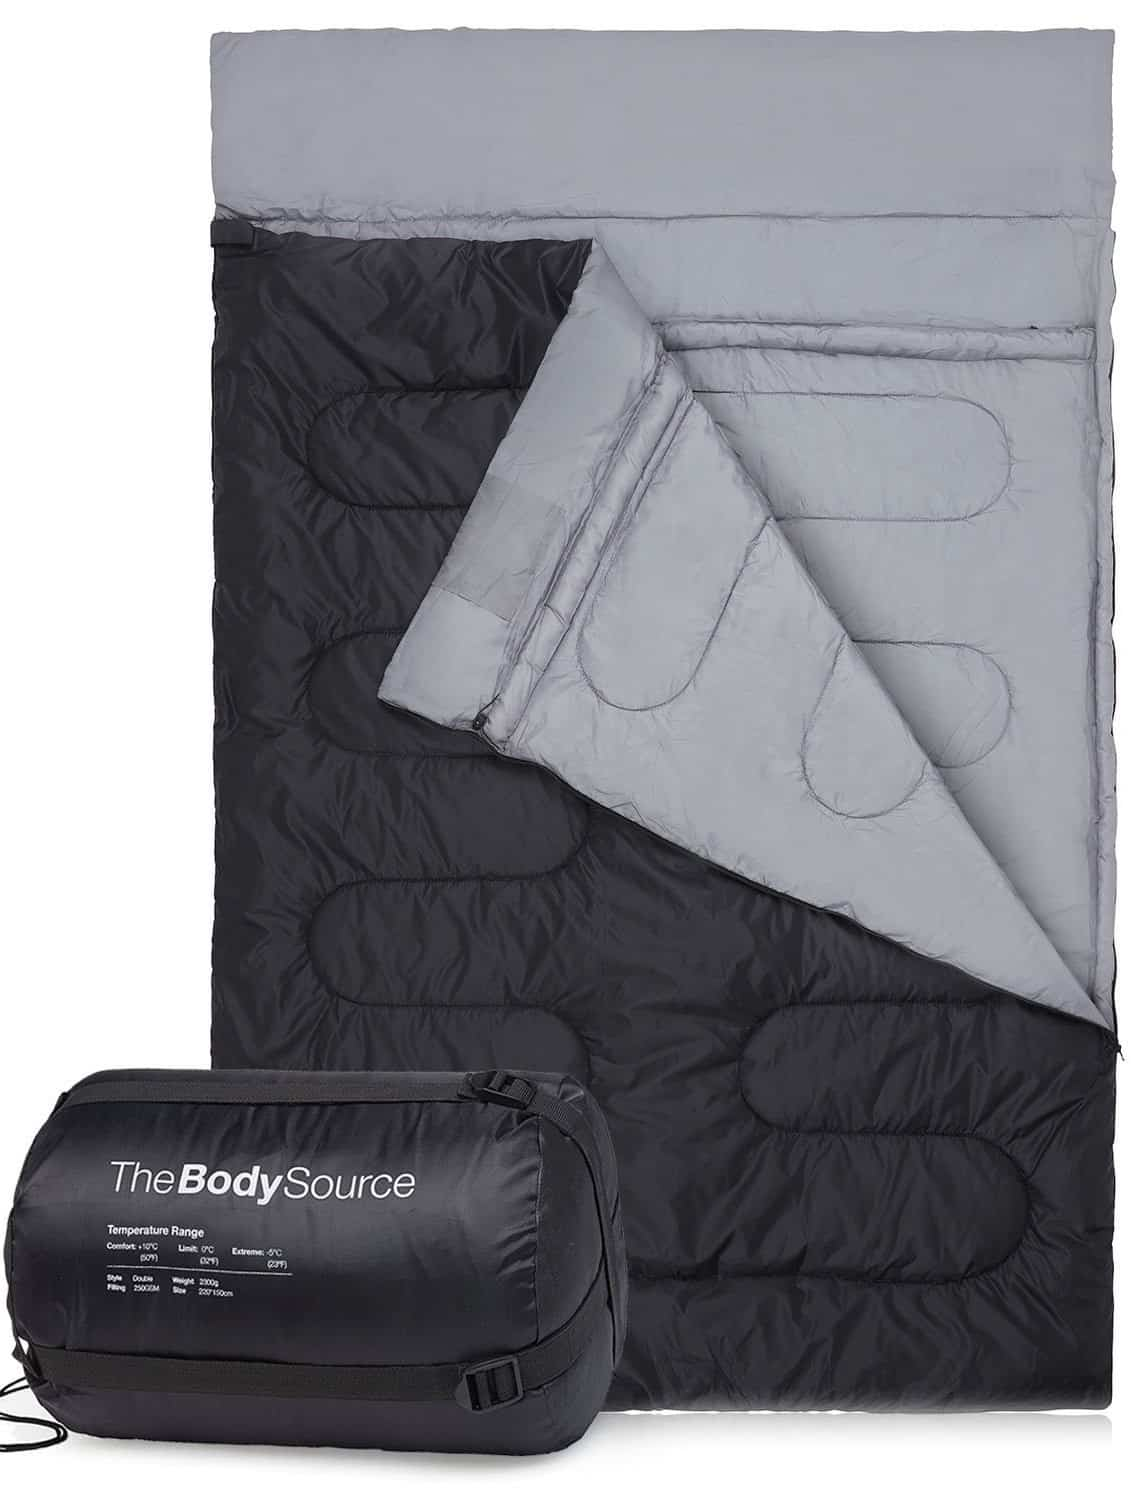 Best Cheap Double Sleeping Bag – The Body Source